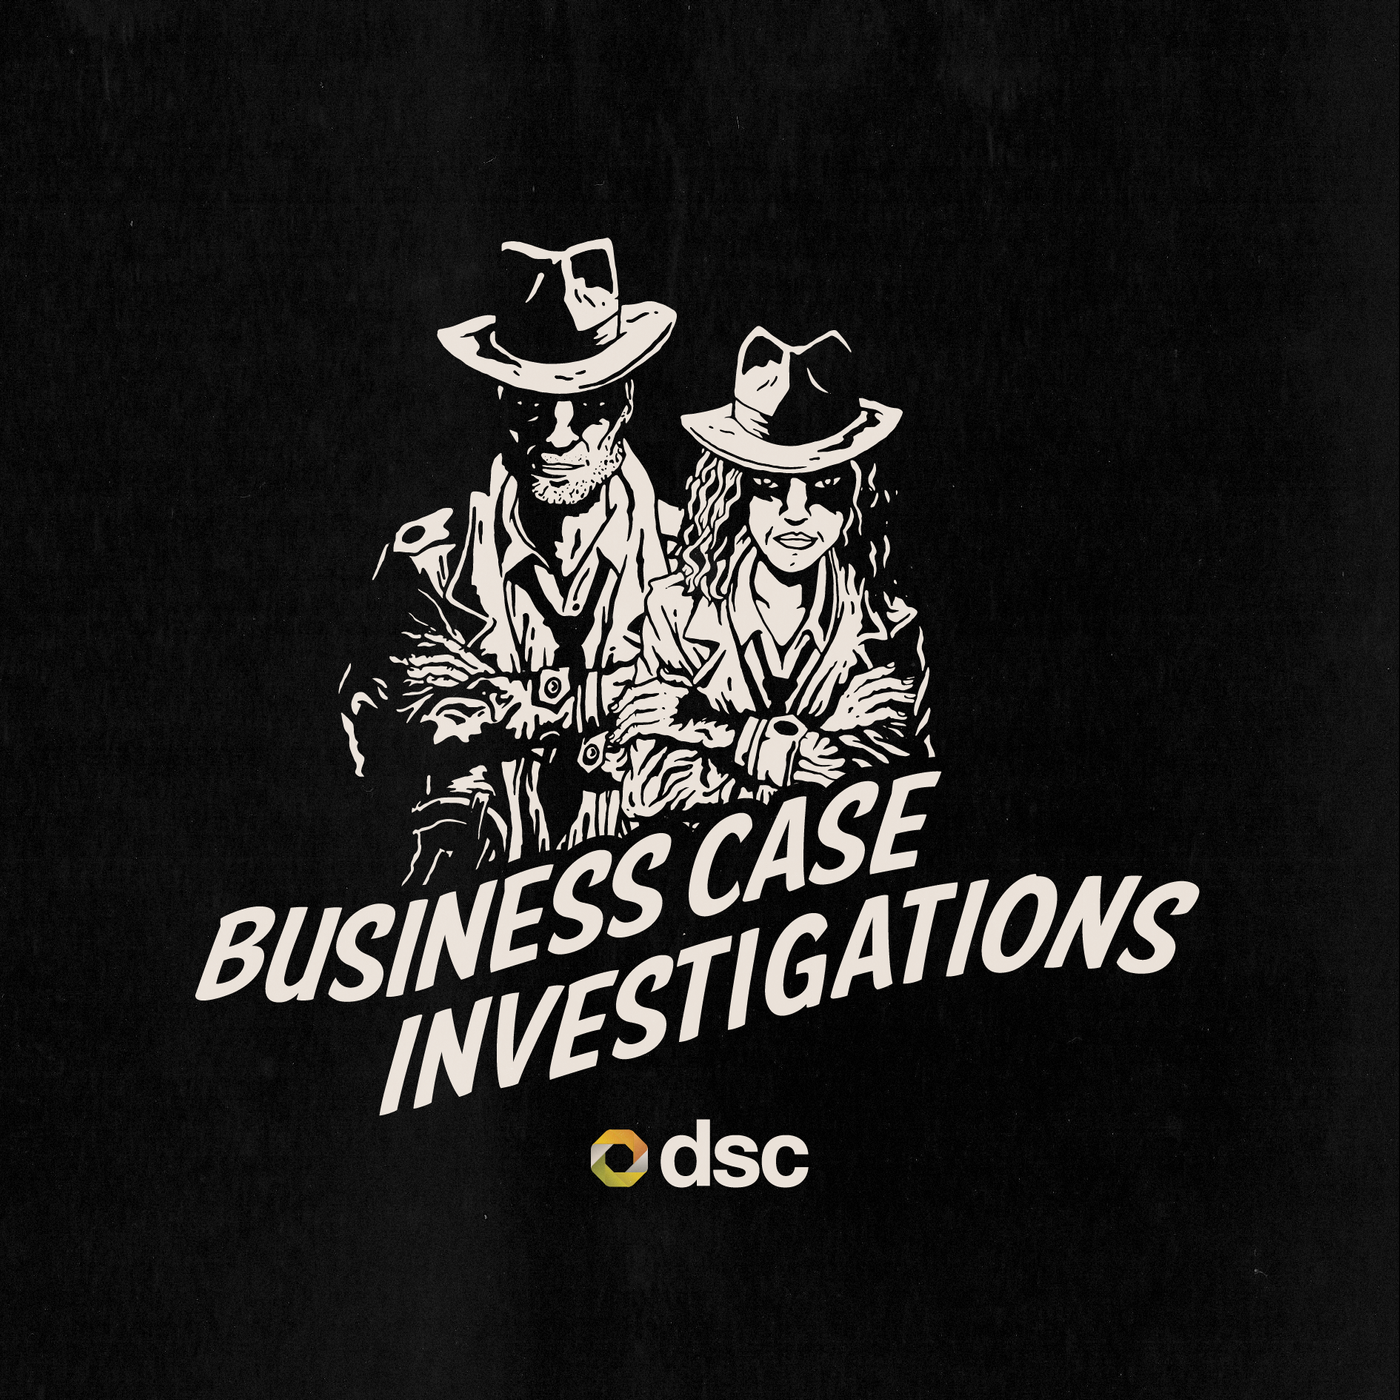 Business Investigations - Can teamwork make the dream work?